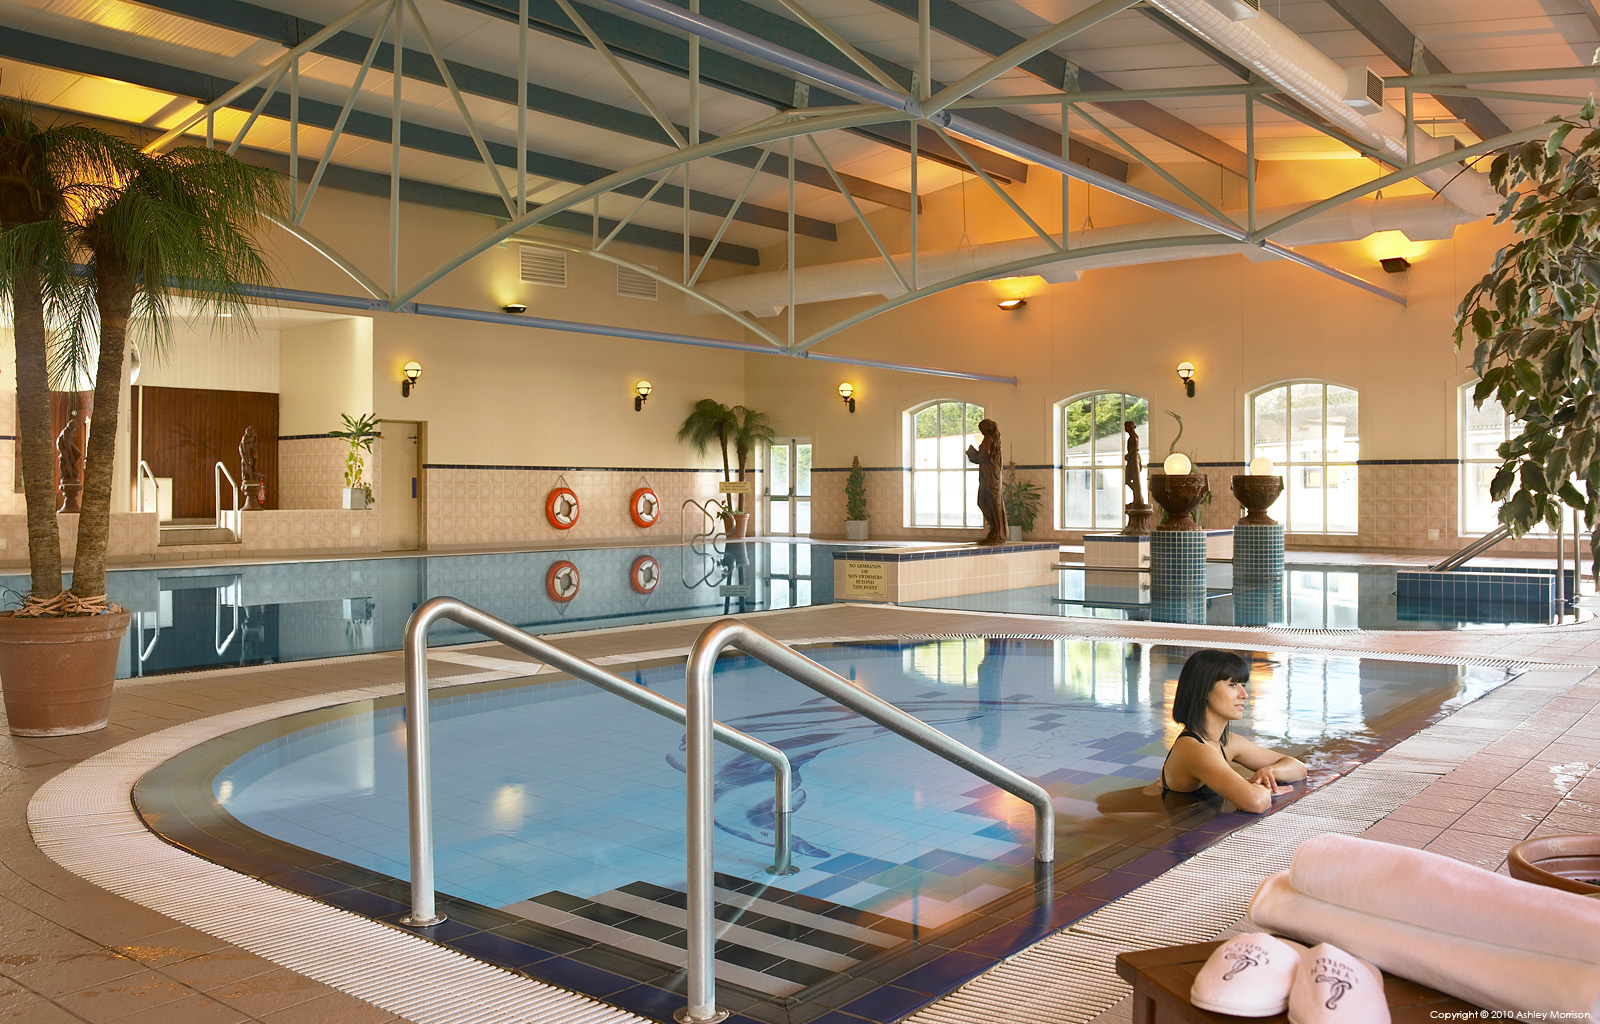 The Swimming Pool At The West County Hotel In The County Clare Town Of Ennis